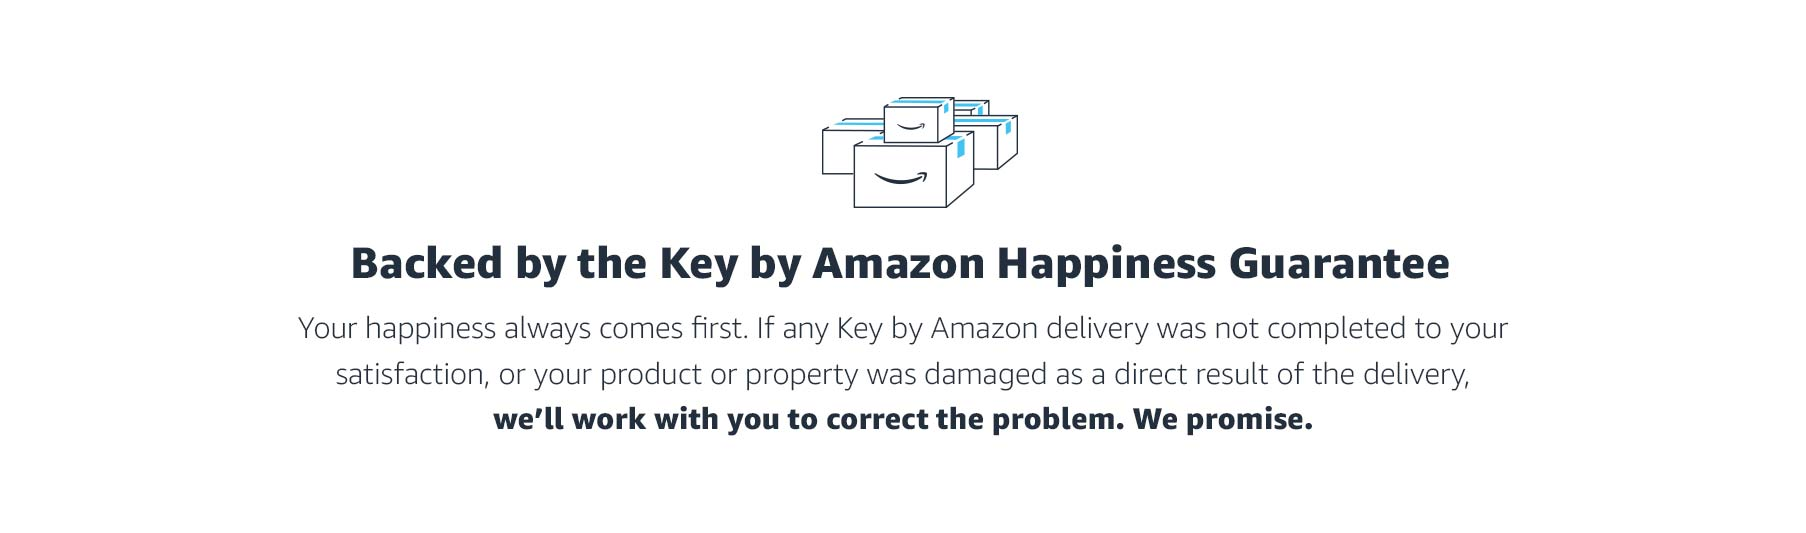 Backed by the Key by Amazon Happiness Guarantee